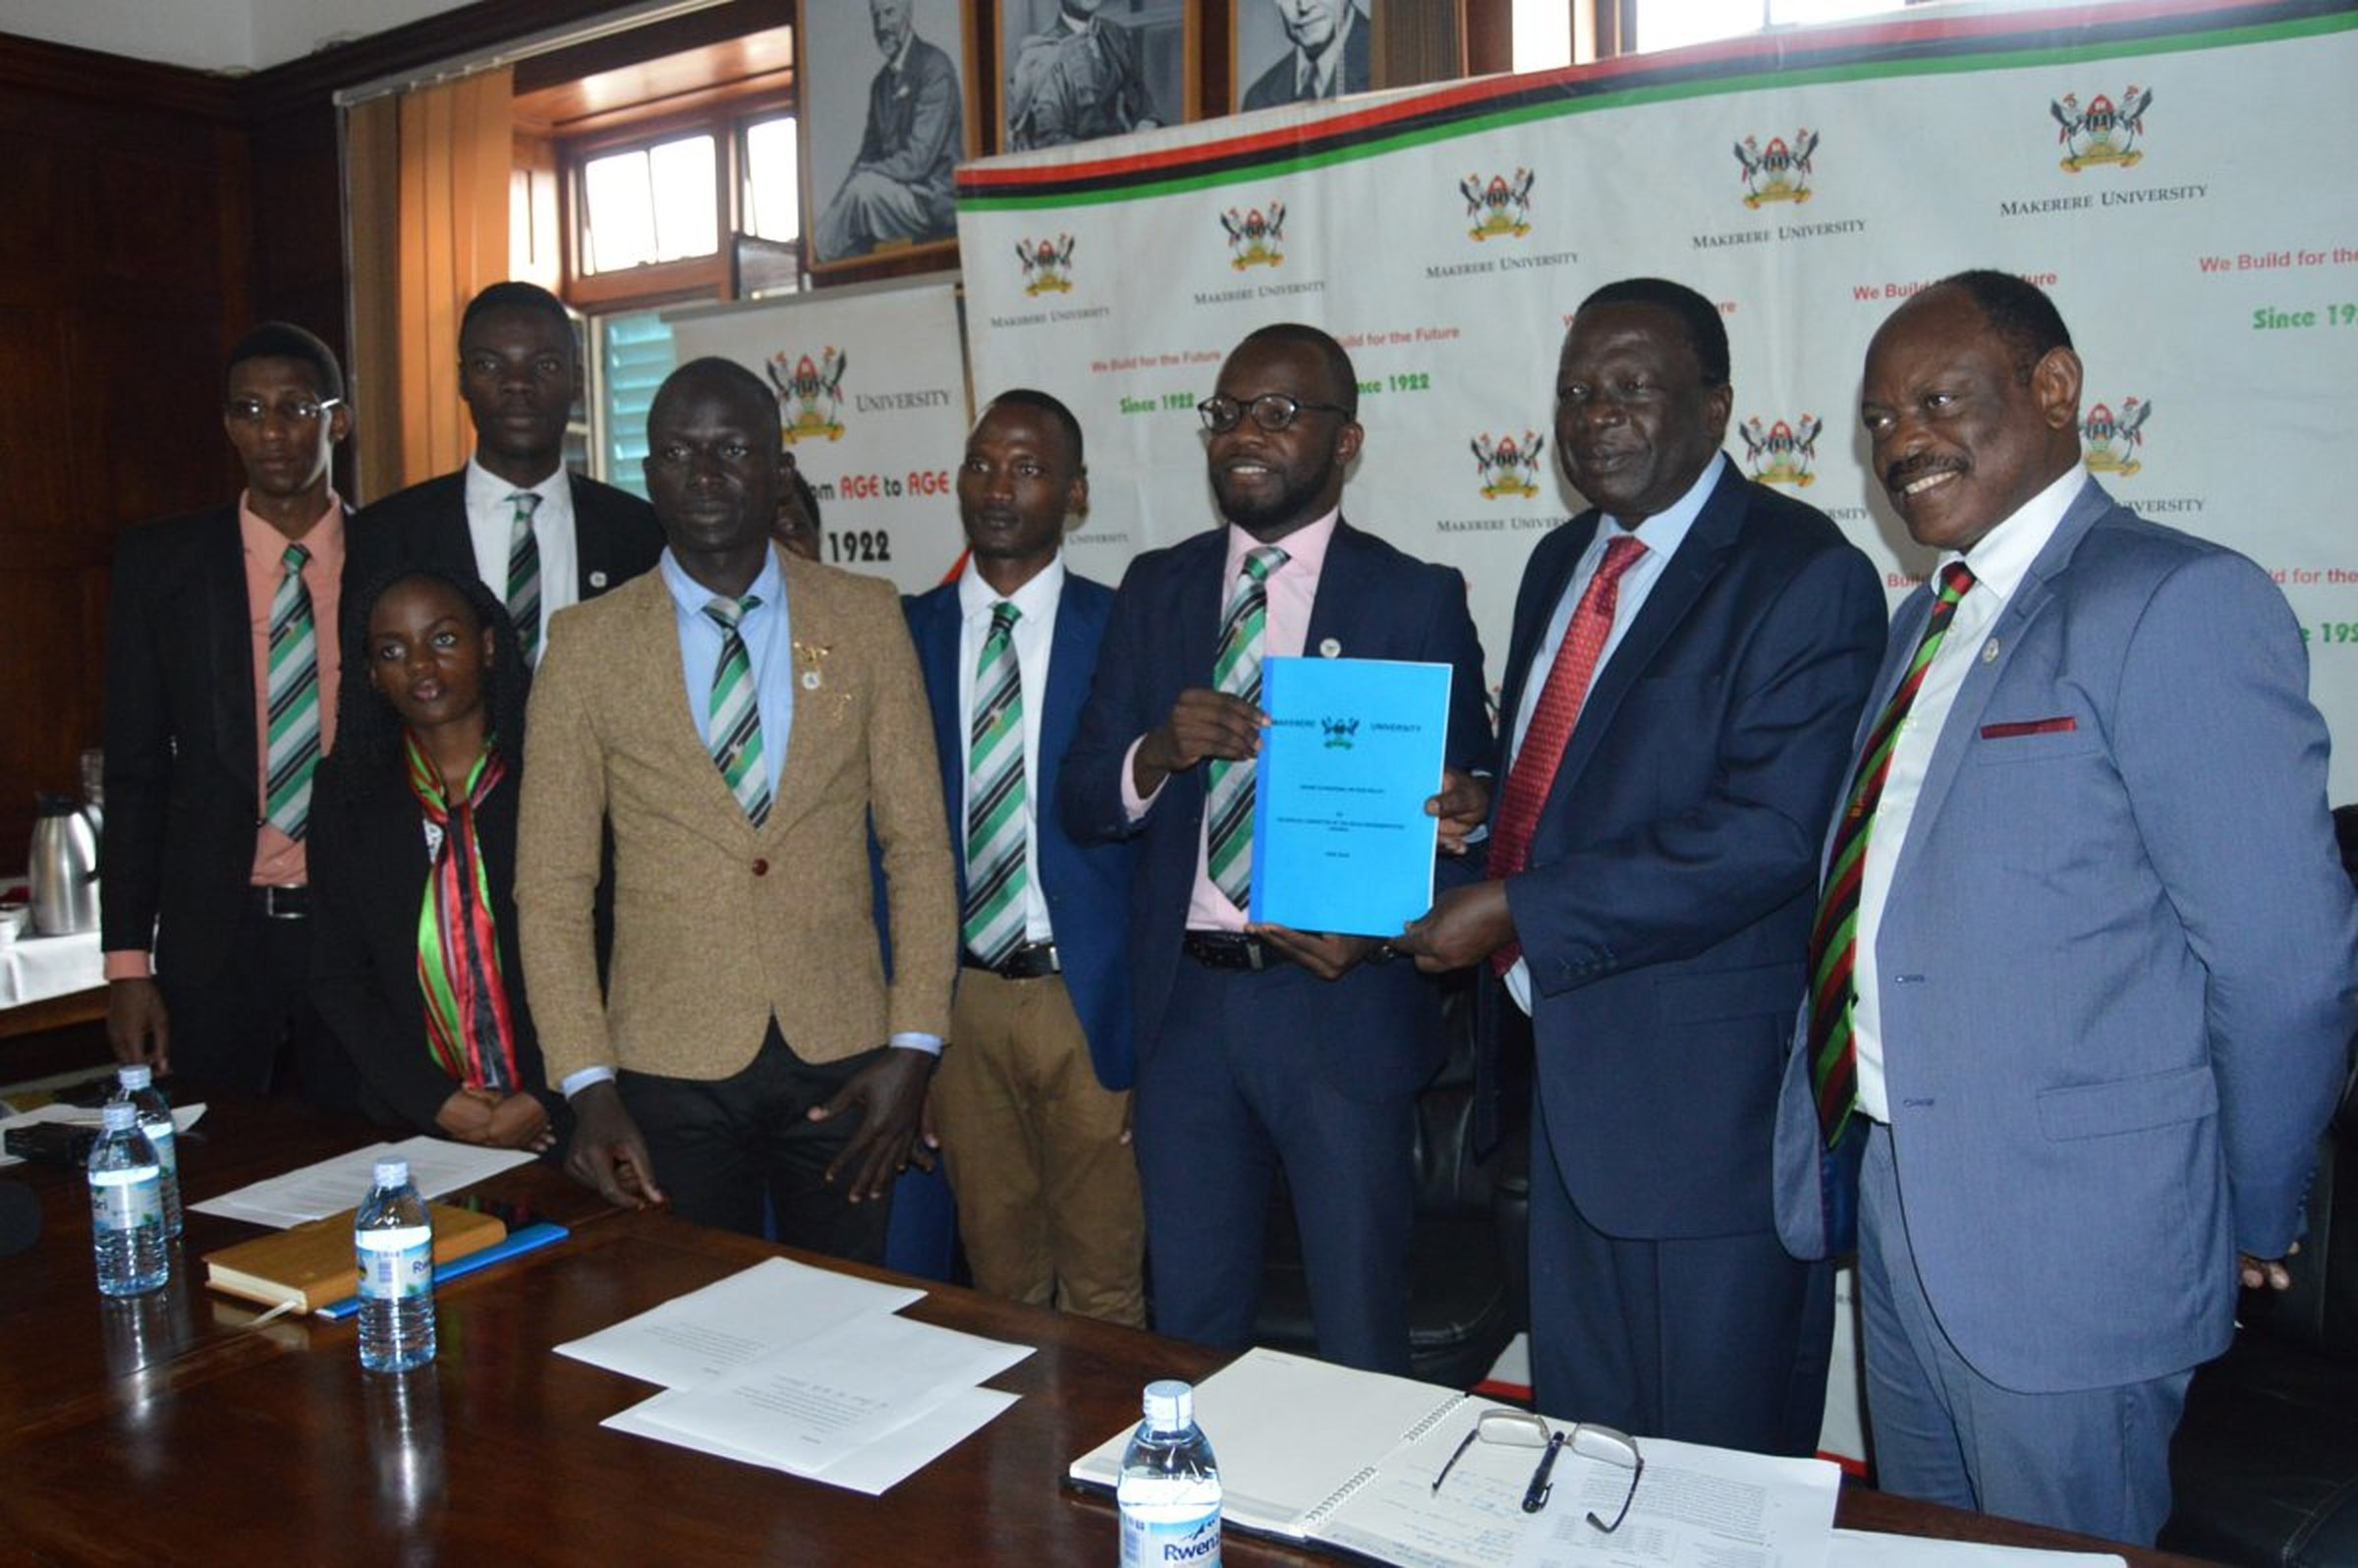 COMMENTS  Makerere University Guild Committee led by Guild President Papa Were Salim (3rd Right) hands over a report on fees structure to Chairperson University Council Eng. Dr. Charles Wana-Etyem second and University VC Barnabas Nawangwe extreme right. (PHOTO: PML Daily)